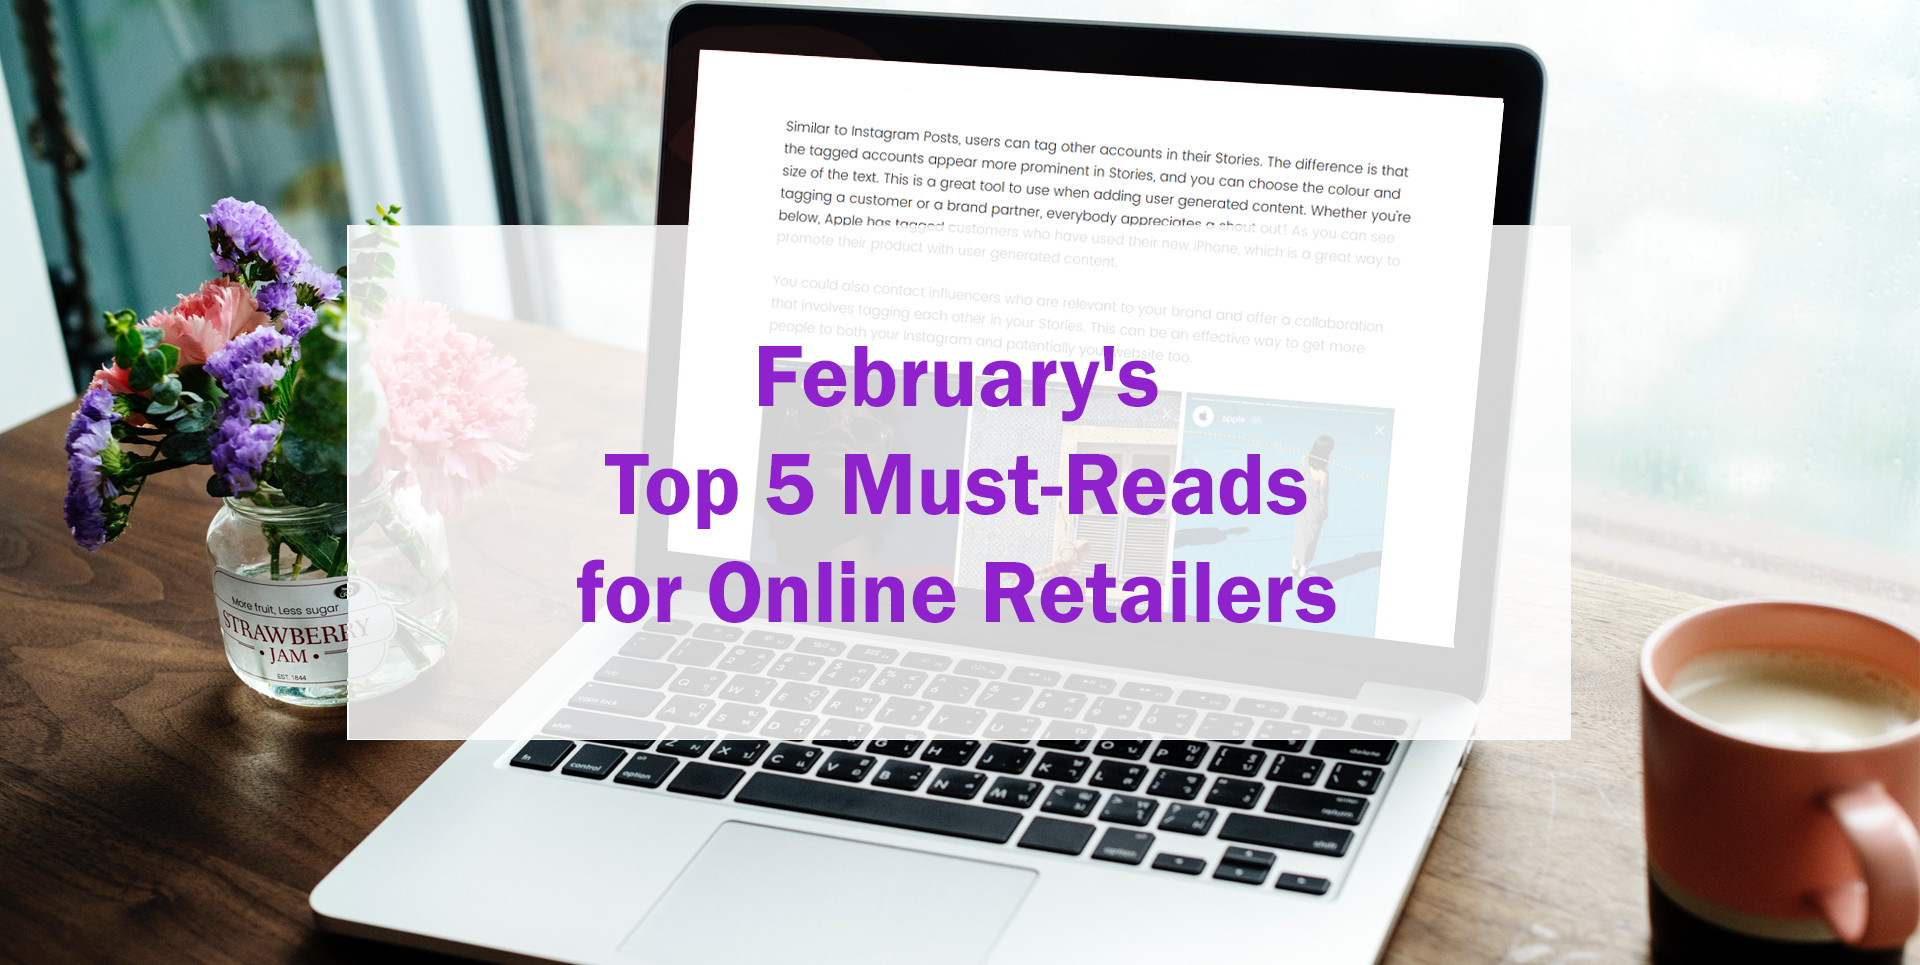 February's Top 5 Must-Reads for Online Retailers